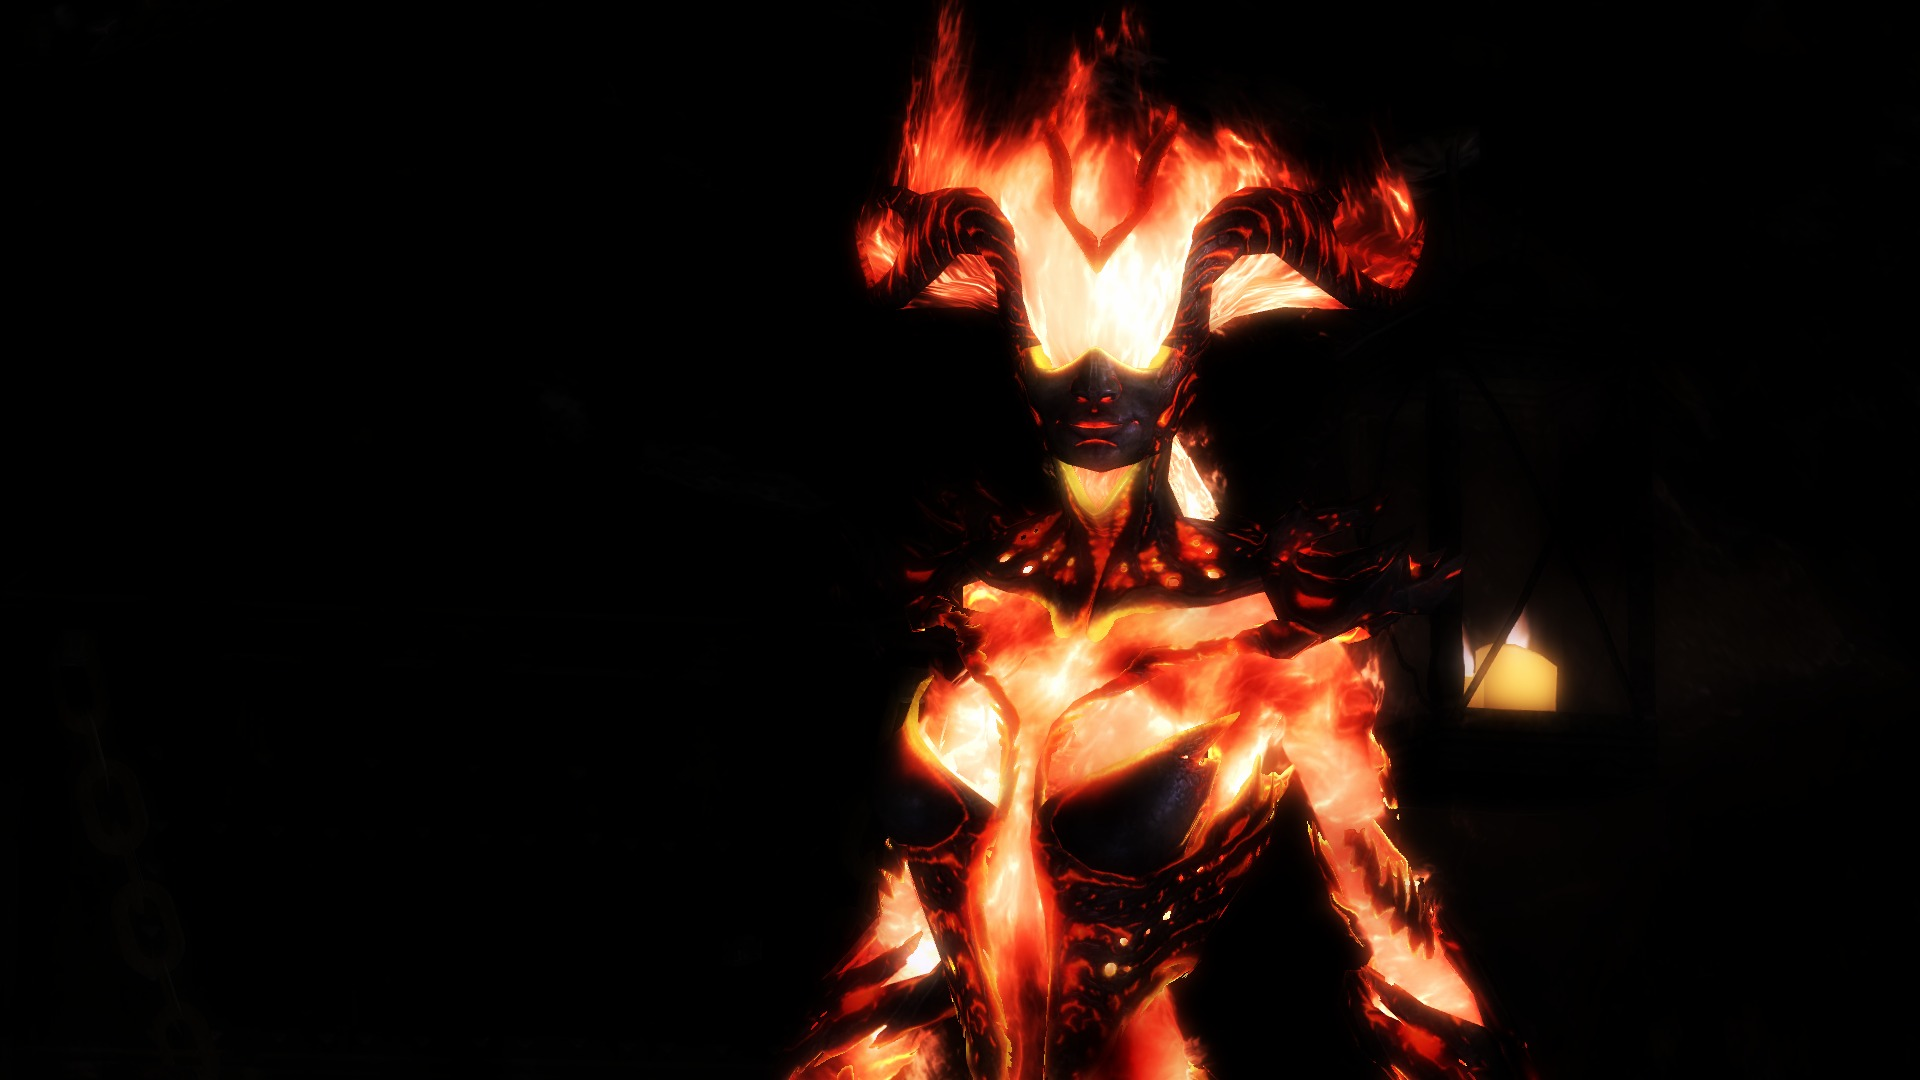 Badass Iphone Wallpaper Fire Elemental Wallpapers Pictures Images